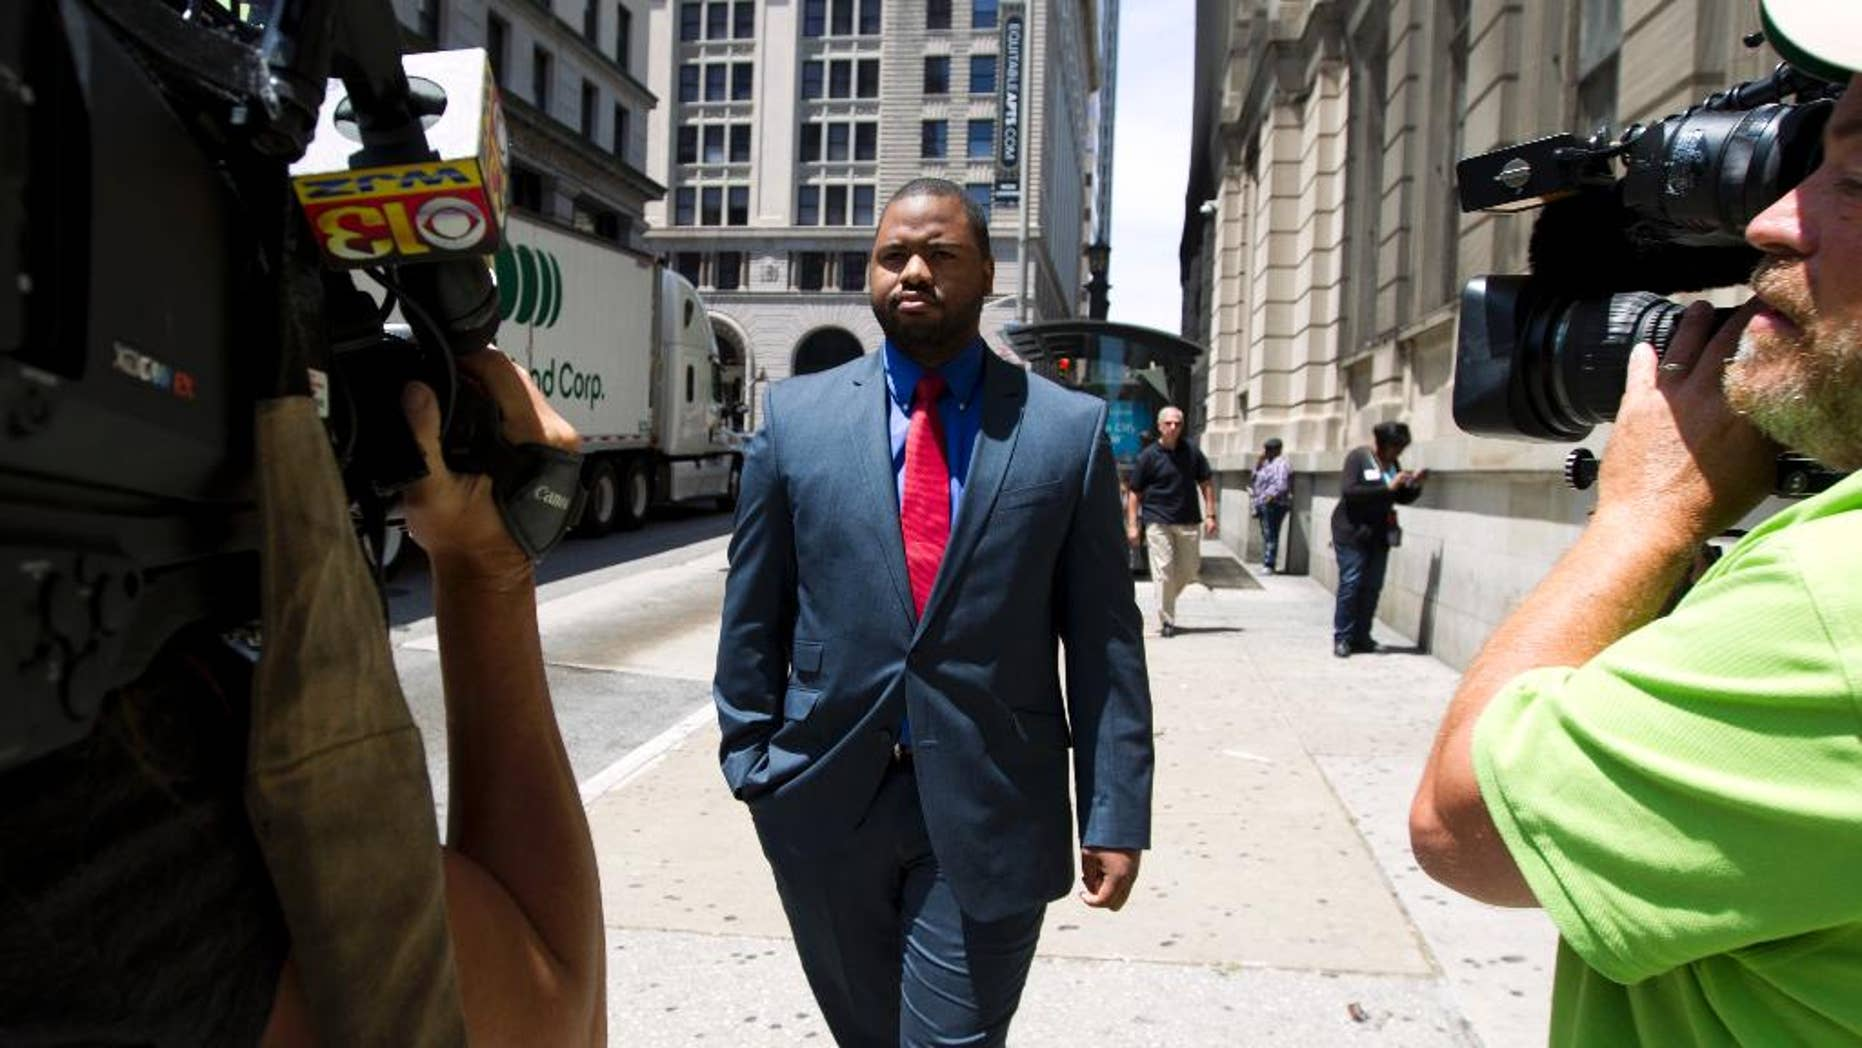 Baltimore police Officer William Porter, one of six Baltimore city police officers charged in connection to the death of Freddie Gray, leaves the courthouse, after testifying in the trial of Officer Caesar Goodson, Monday, June 13, 2016, in Baltimore Md. Porter's trial in the Gray case ended in mistrial. He will be tried again in September. (AP Photo/Jose Luis Magana)